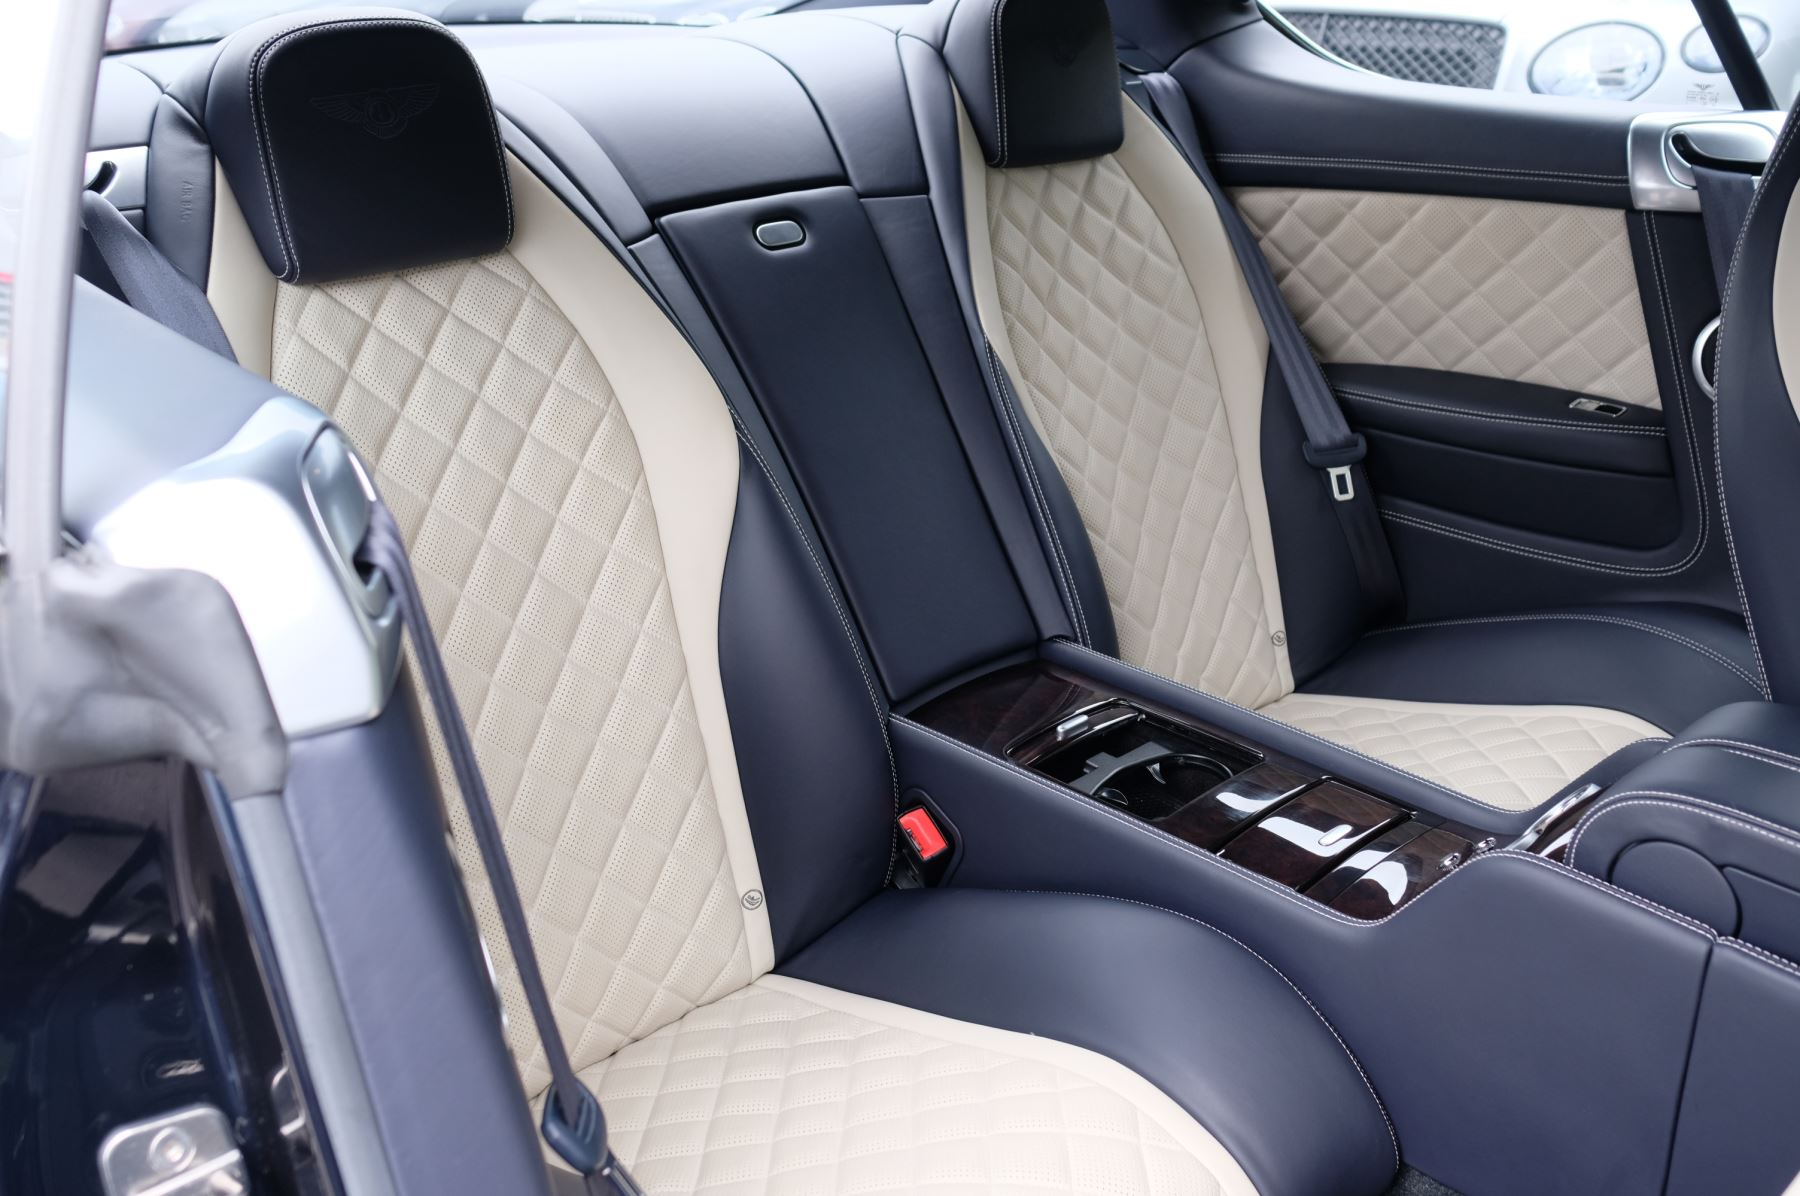 Bentley Continental GT 6.0 W12 [635] Speed - 21 inch Directional Sports Alloys - Ventilated Front Seats with Massage image 14